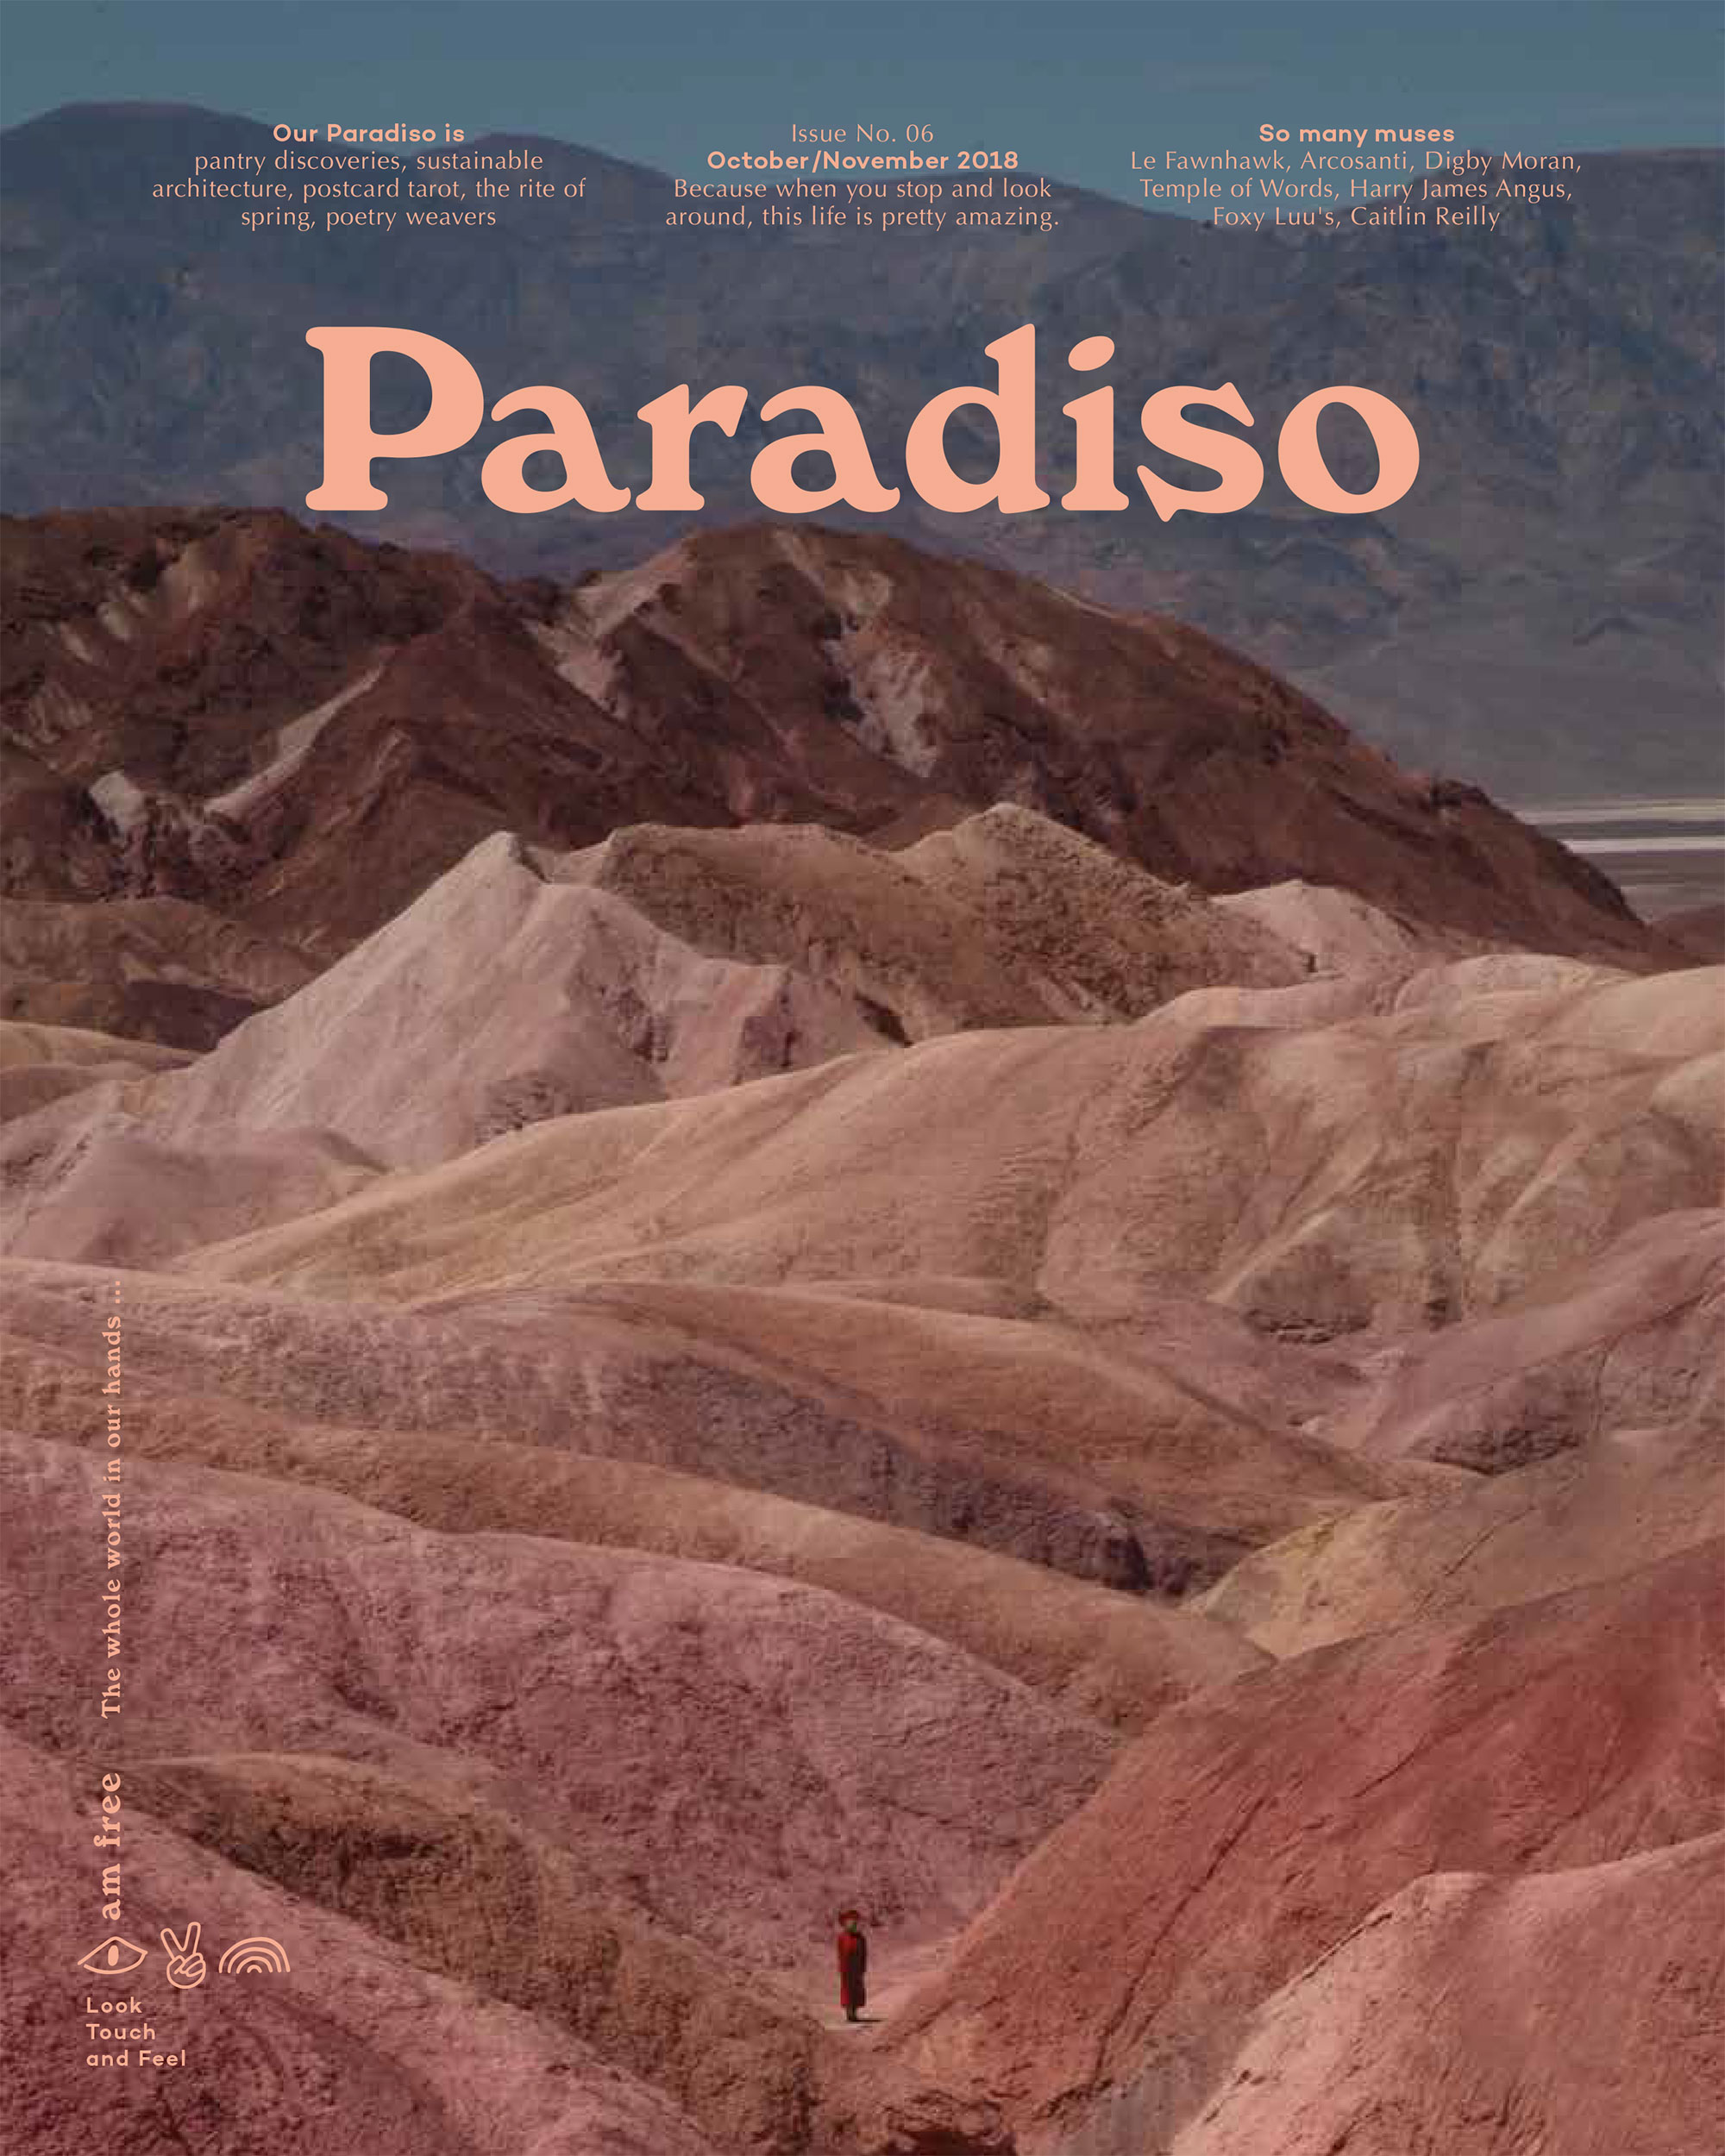 Paradiso Issue 06: The whole world in our hands ...